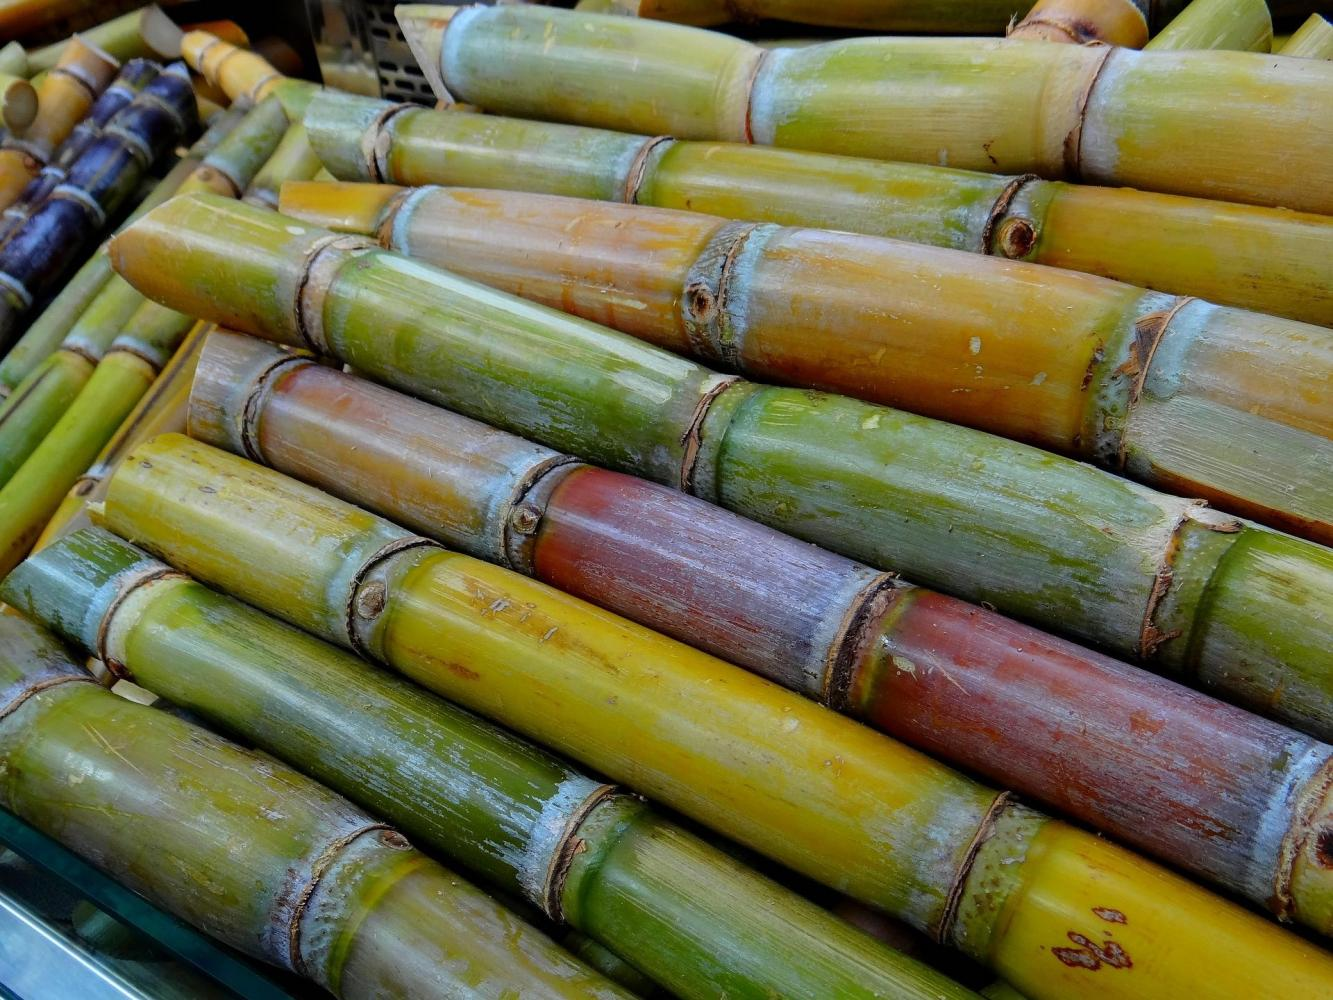 The Thai Sugar Millers Corporation anticipates the price guarantee will encourage farmers to grow more sugarcane.